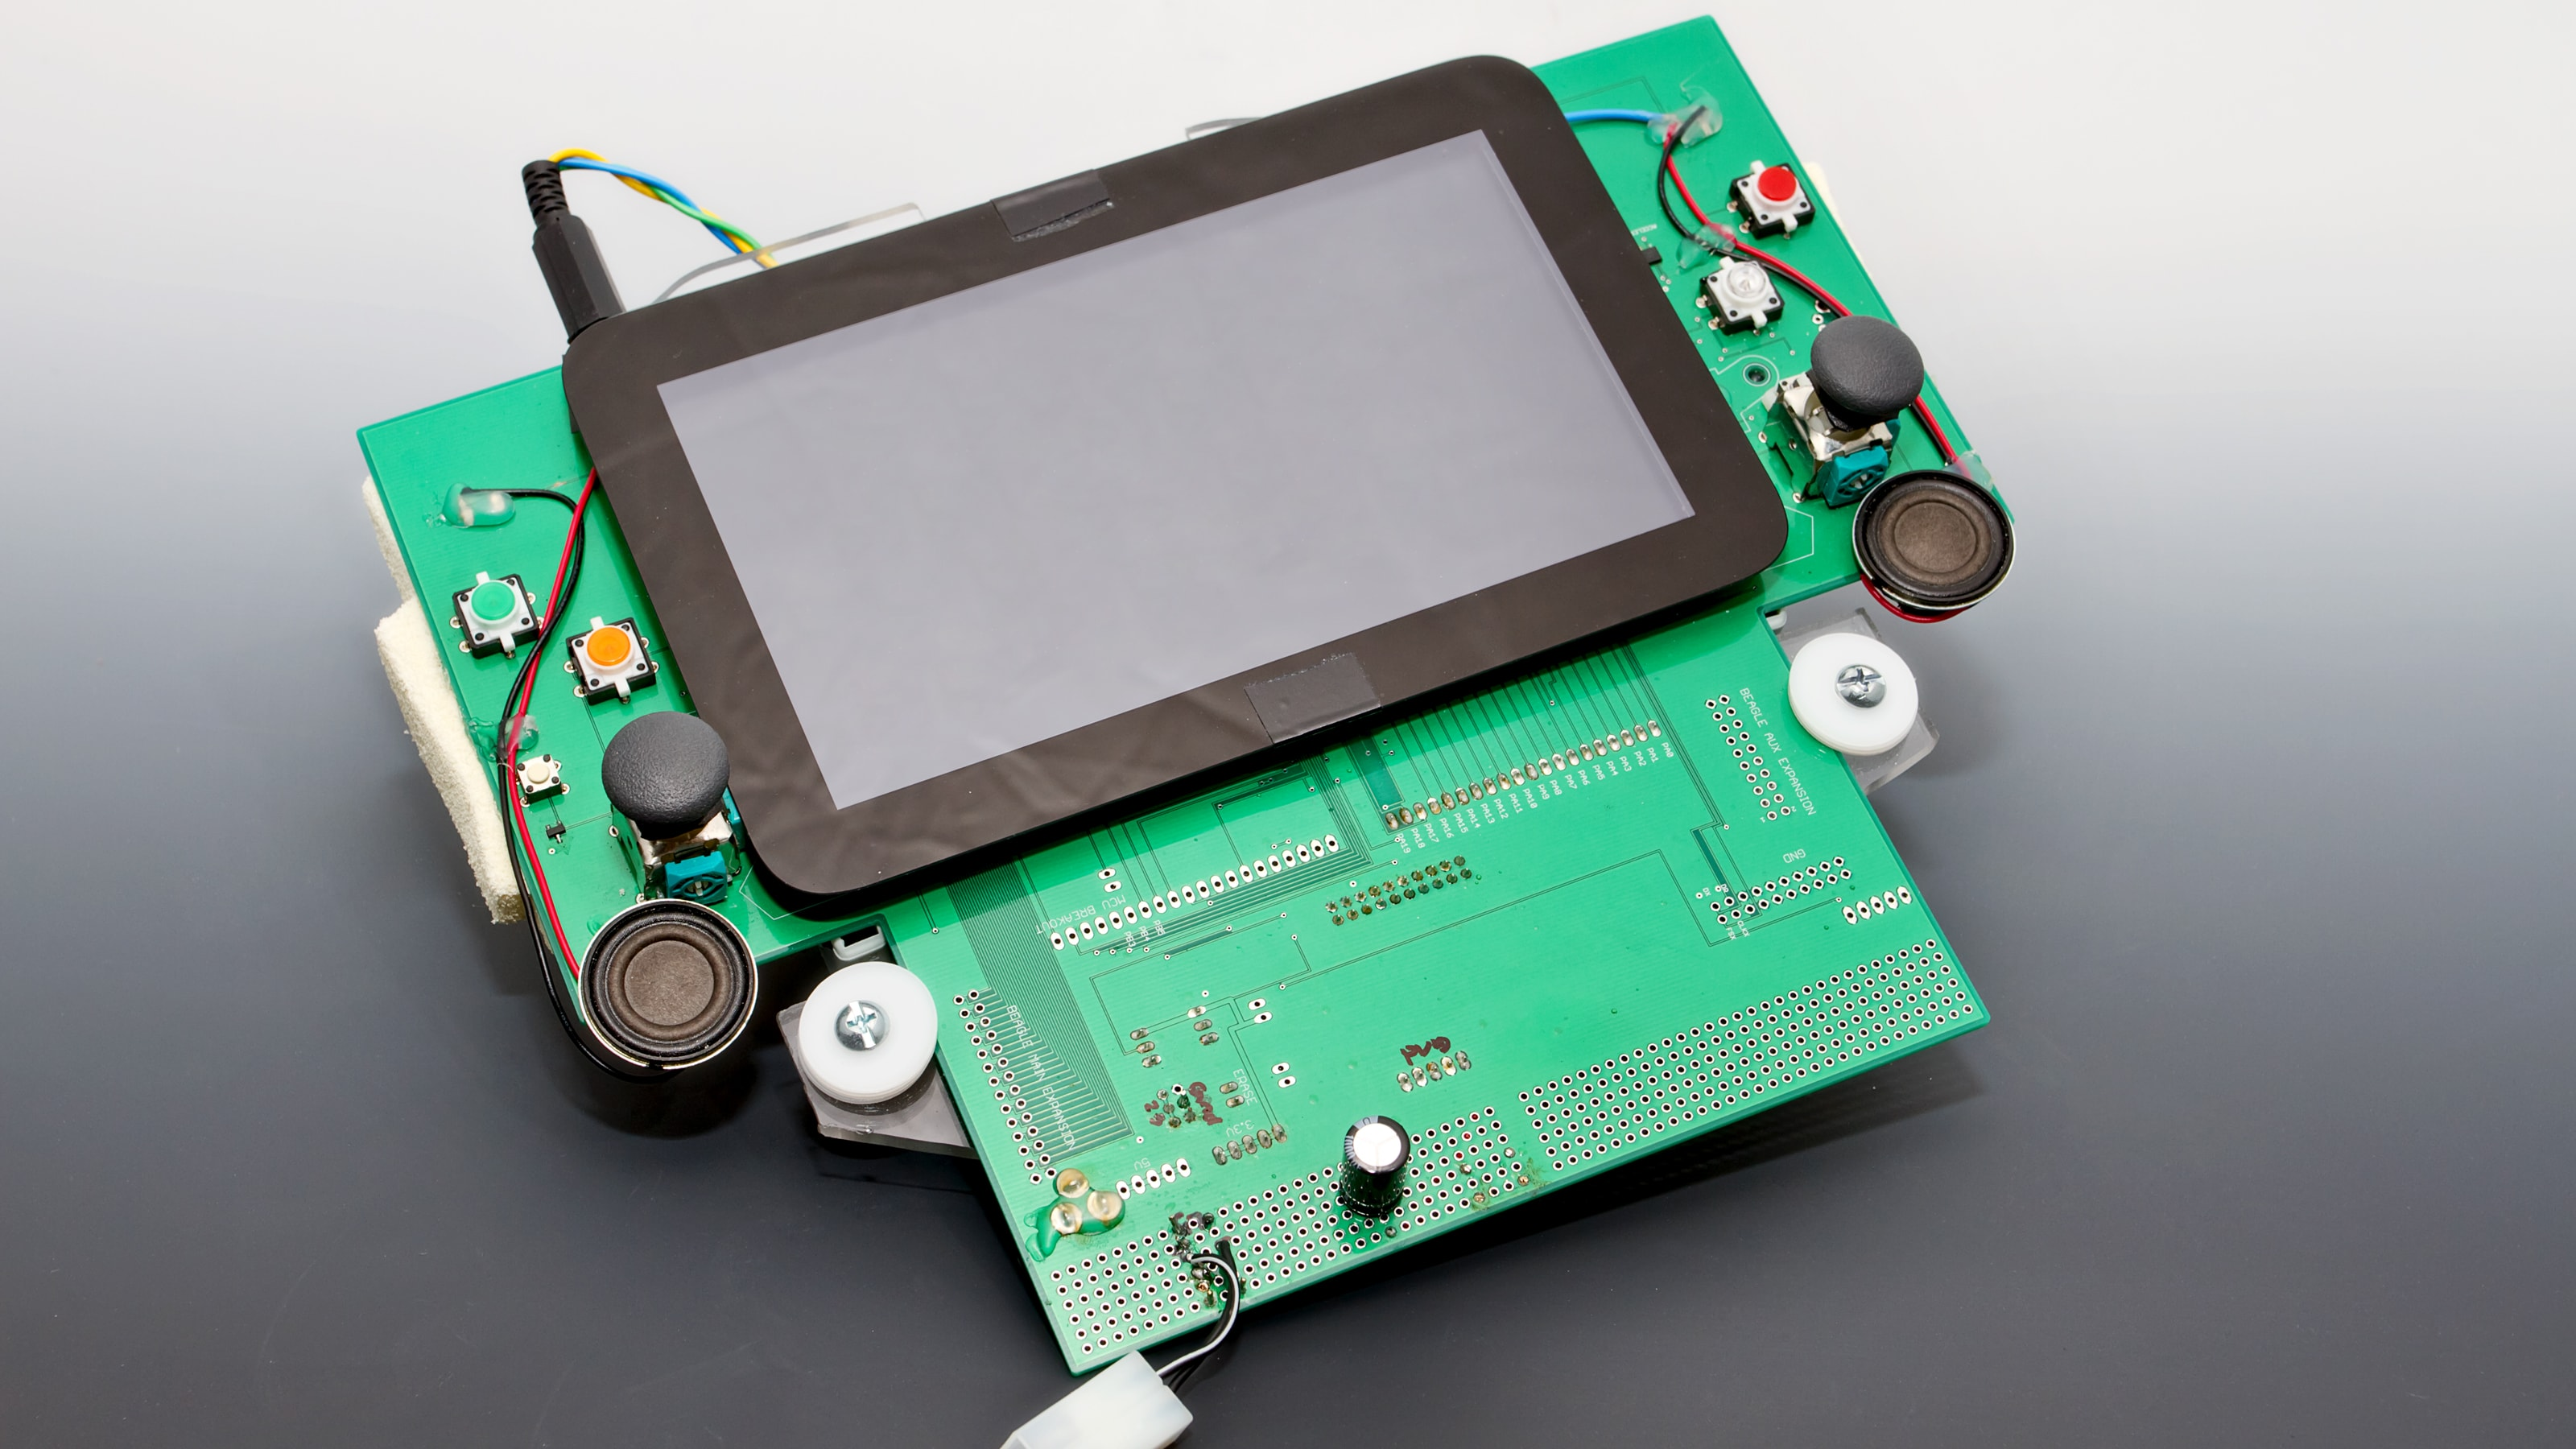 A screen mounted to a green circuit board with two control sticks.